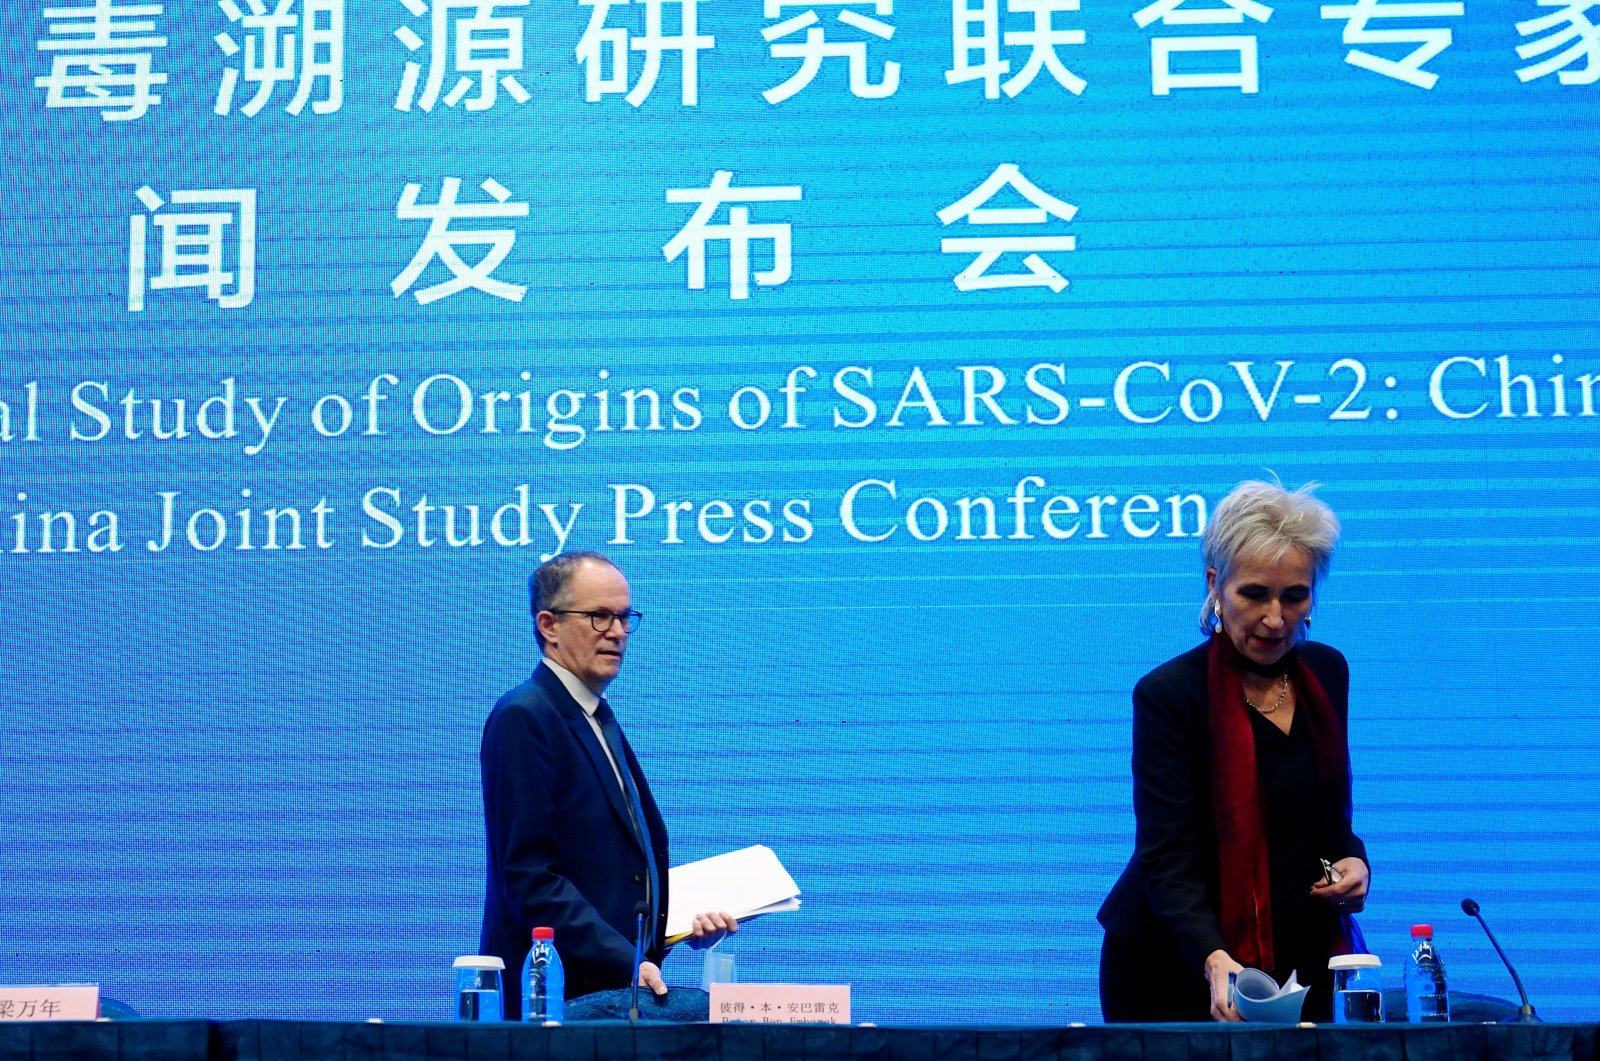 Peter Ben Embarek and Marion Koopmans, members of the World Health Organization (WHO) team tasked with investigating the origins of the coronavirus disease, arrive for the WHO-China joint study news conference at a hotel in Wuhan, Hubei province, China, Feb. 9, 2021. (REUTERS Photo)